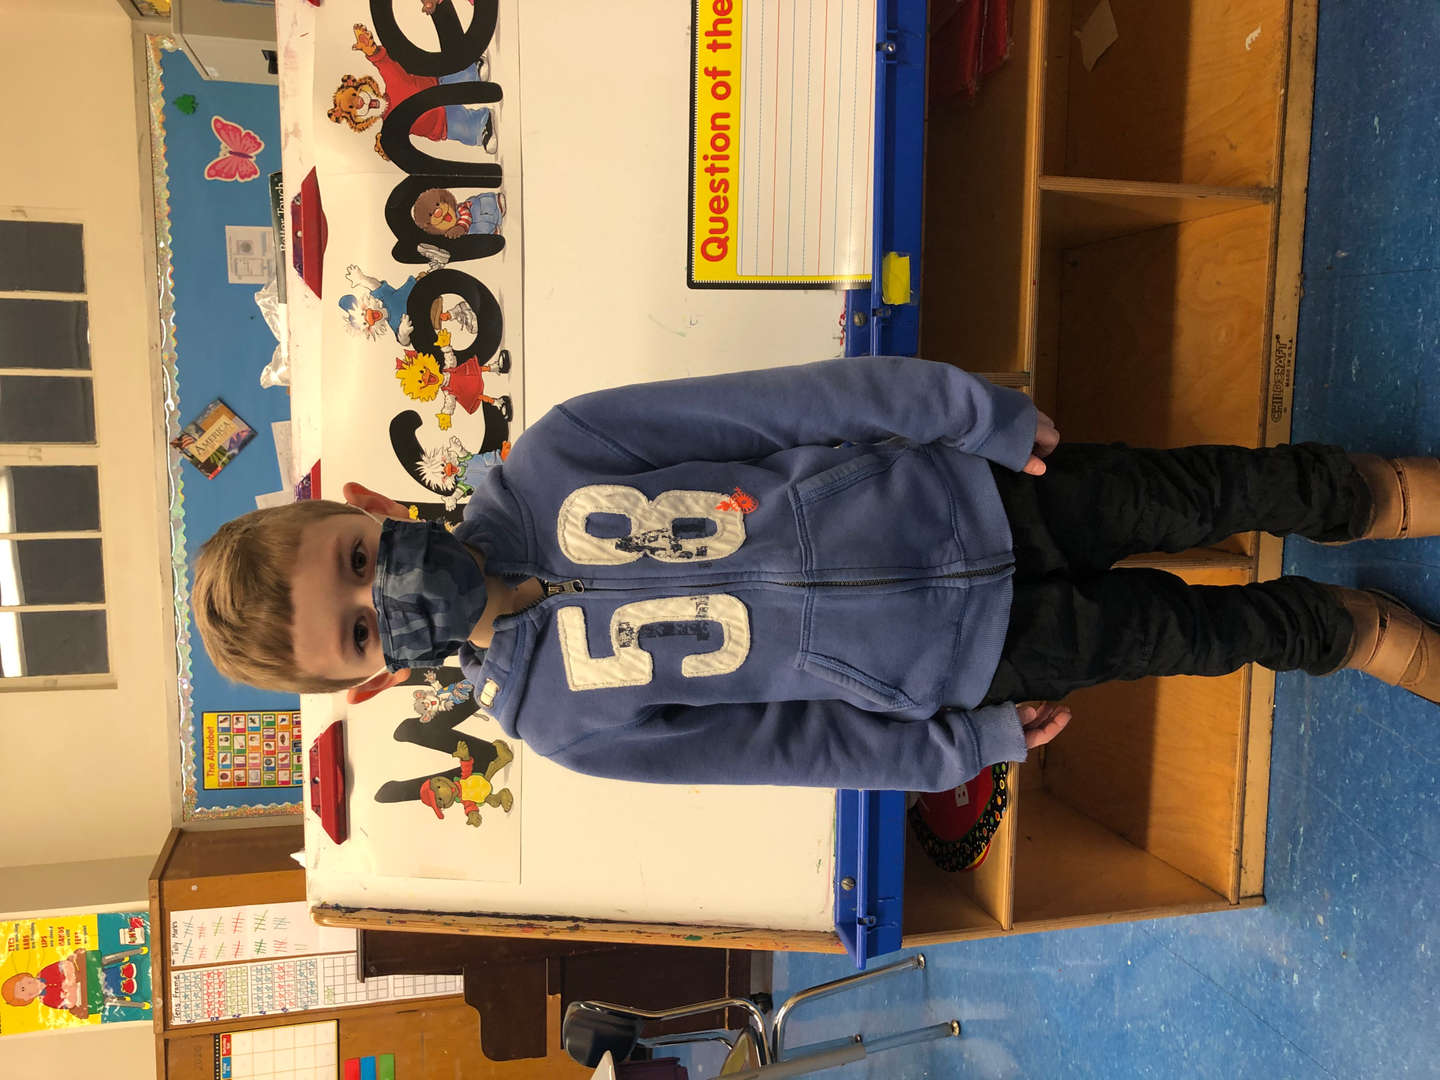 student wears blue sweatshirt with the number 53